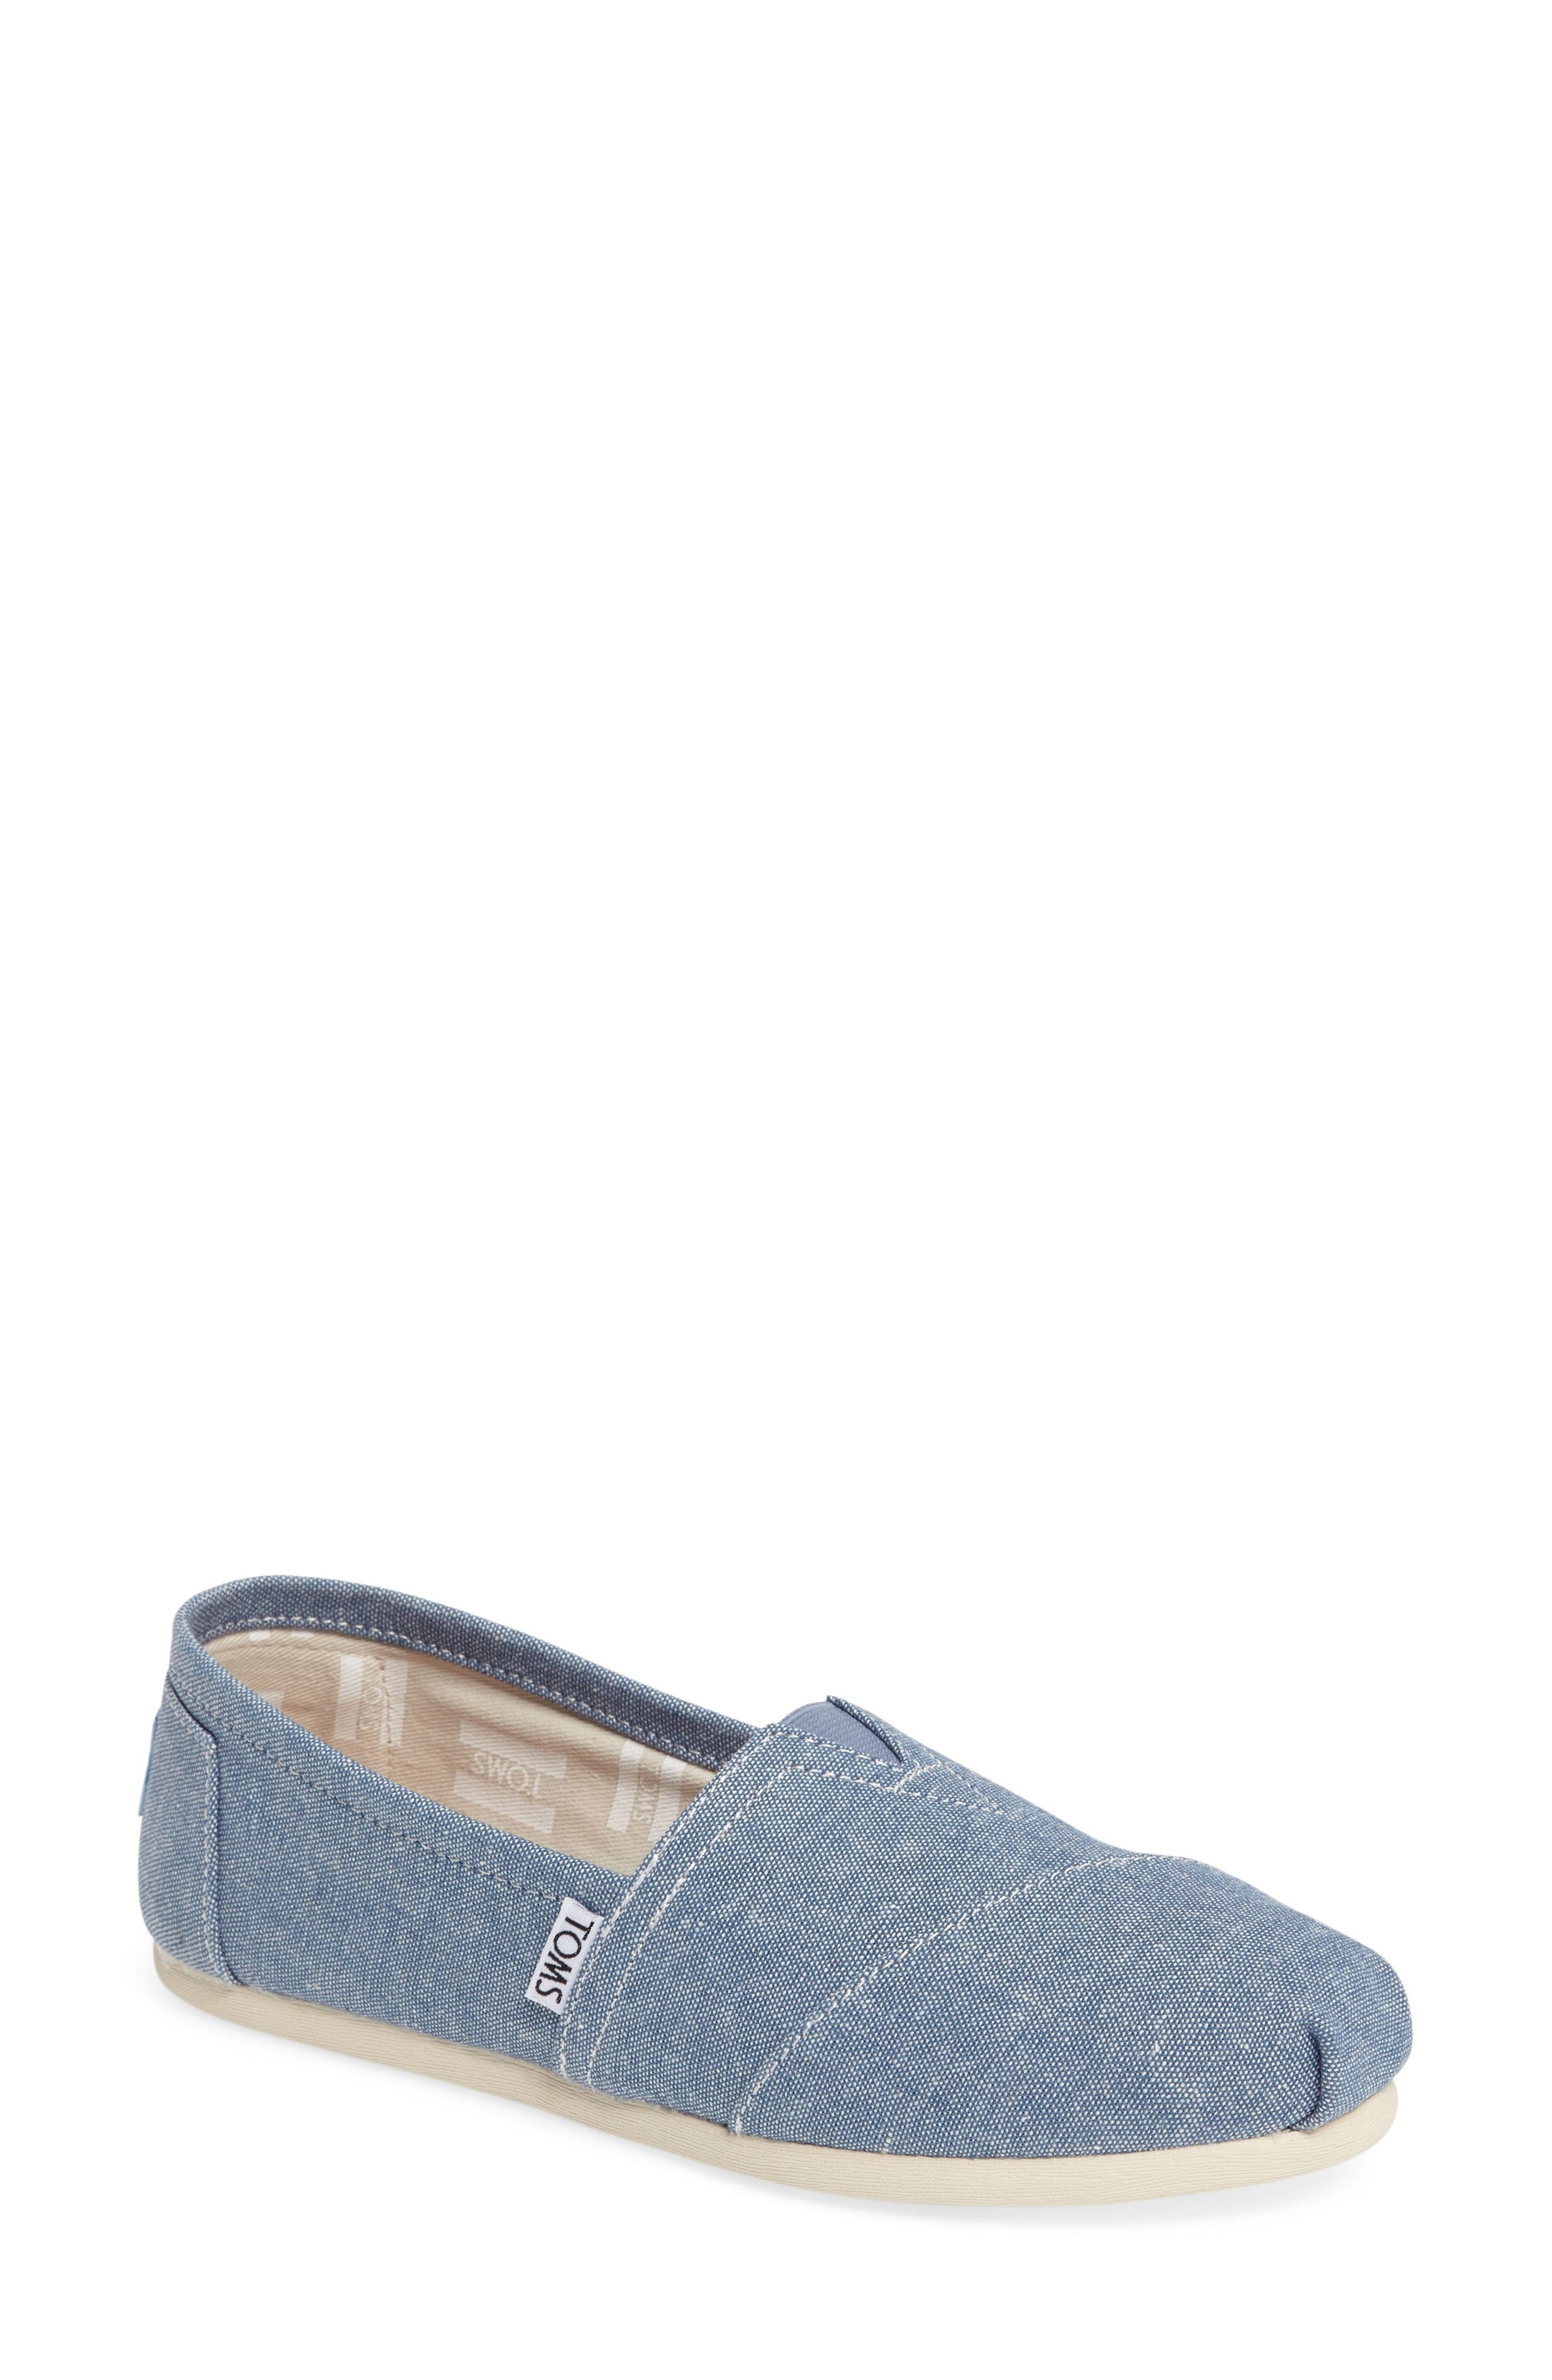 Classic Aplargata Slip-On,                         Main,                         color, Medium Blue